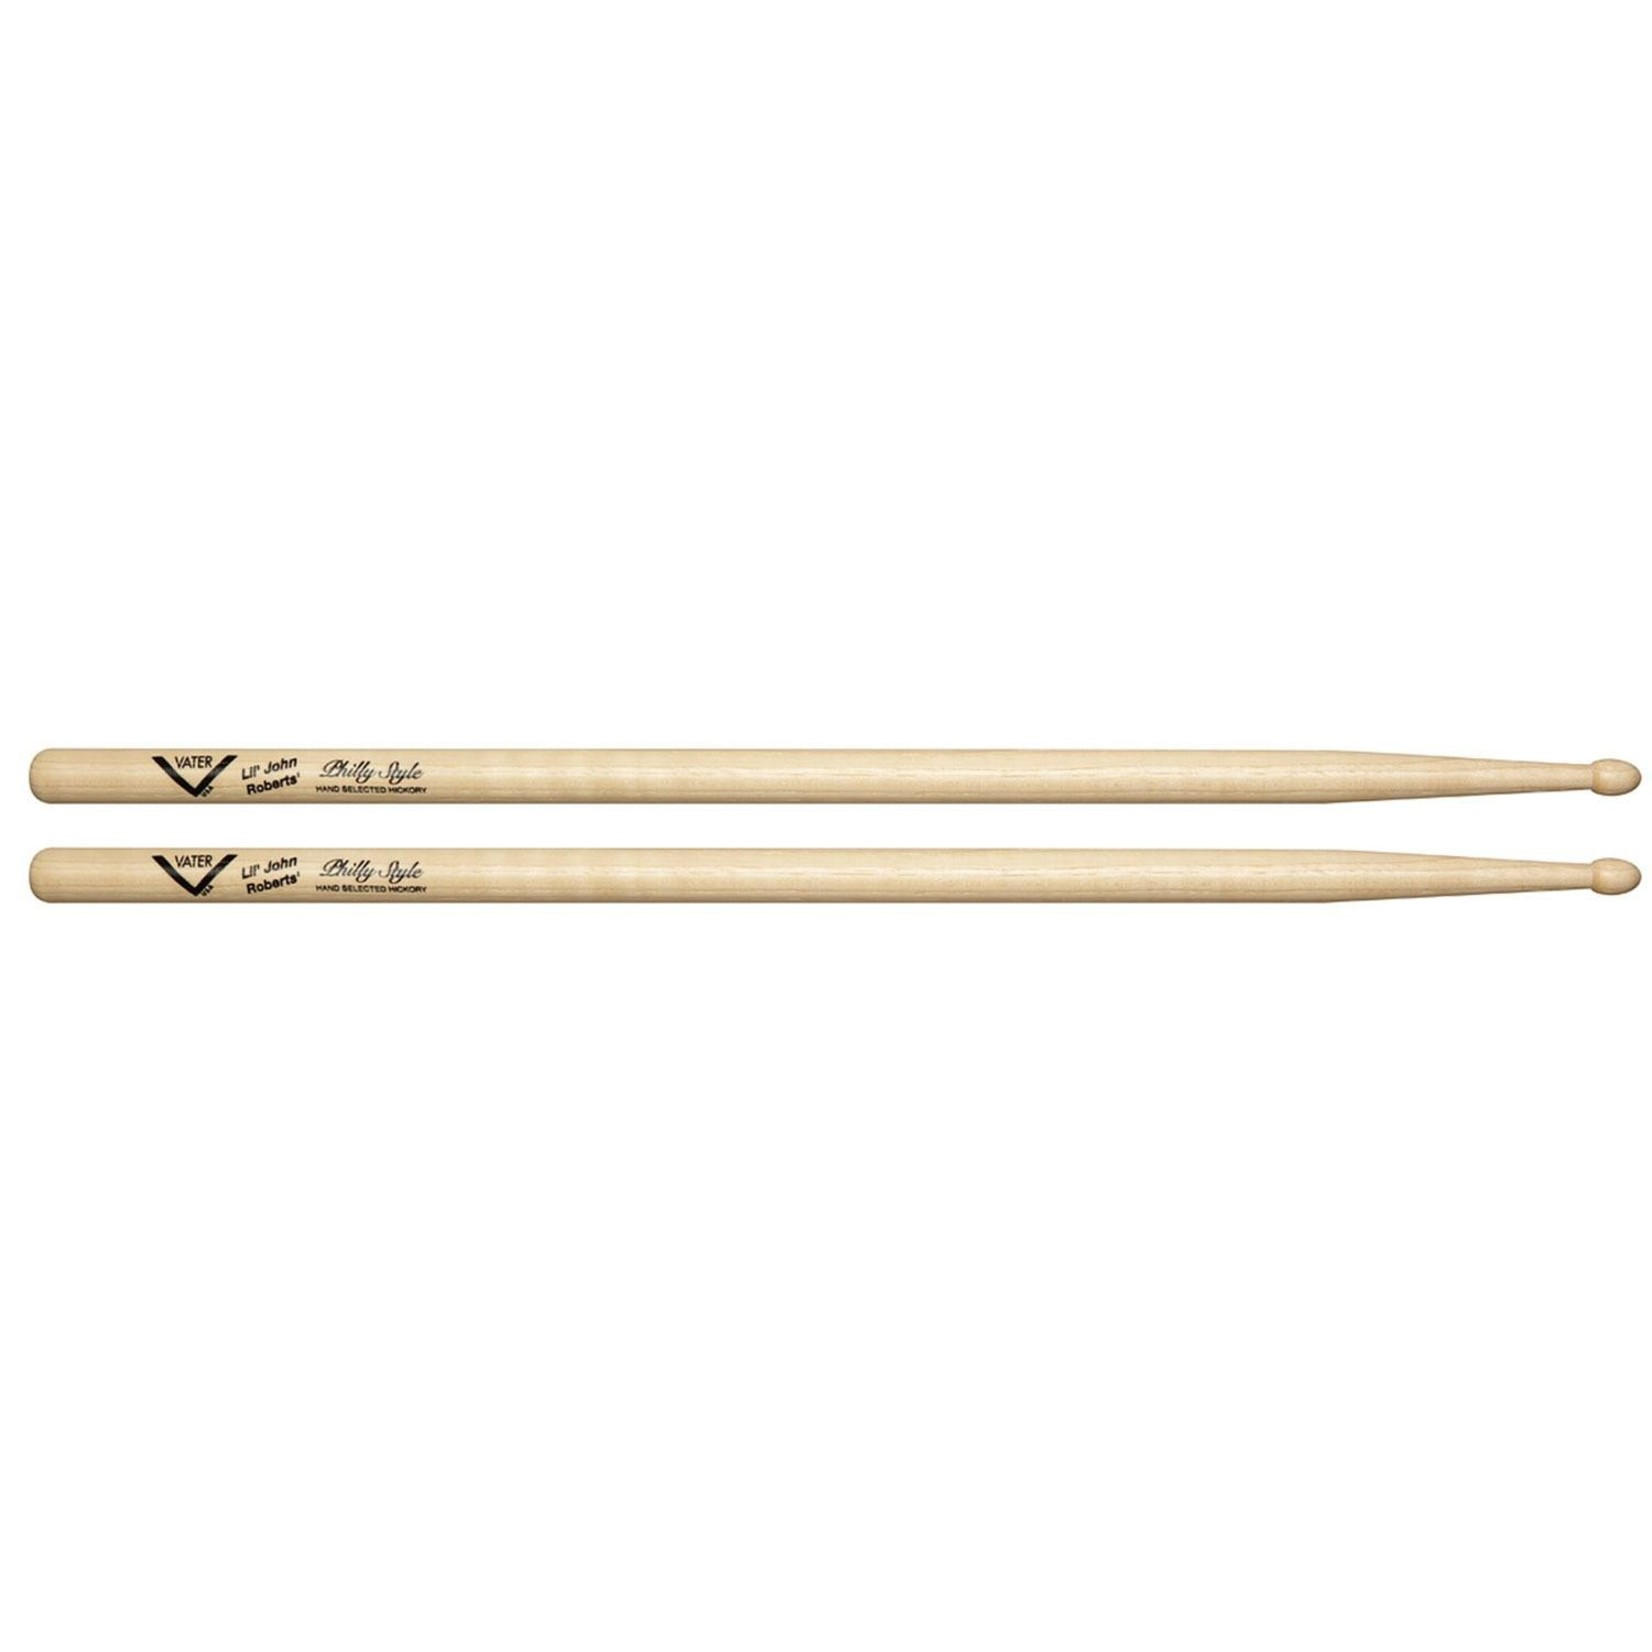 Vater Vater Lil' John Roberts' Philly Style